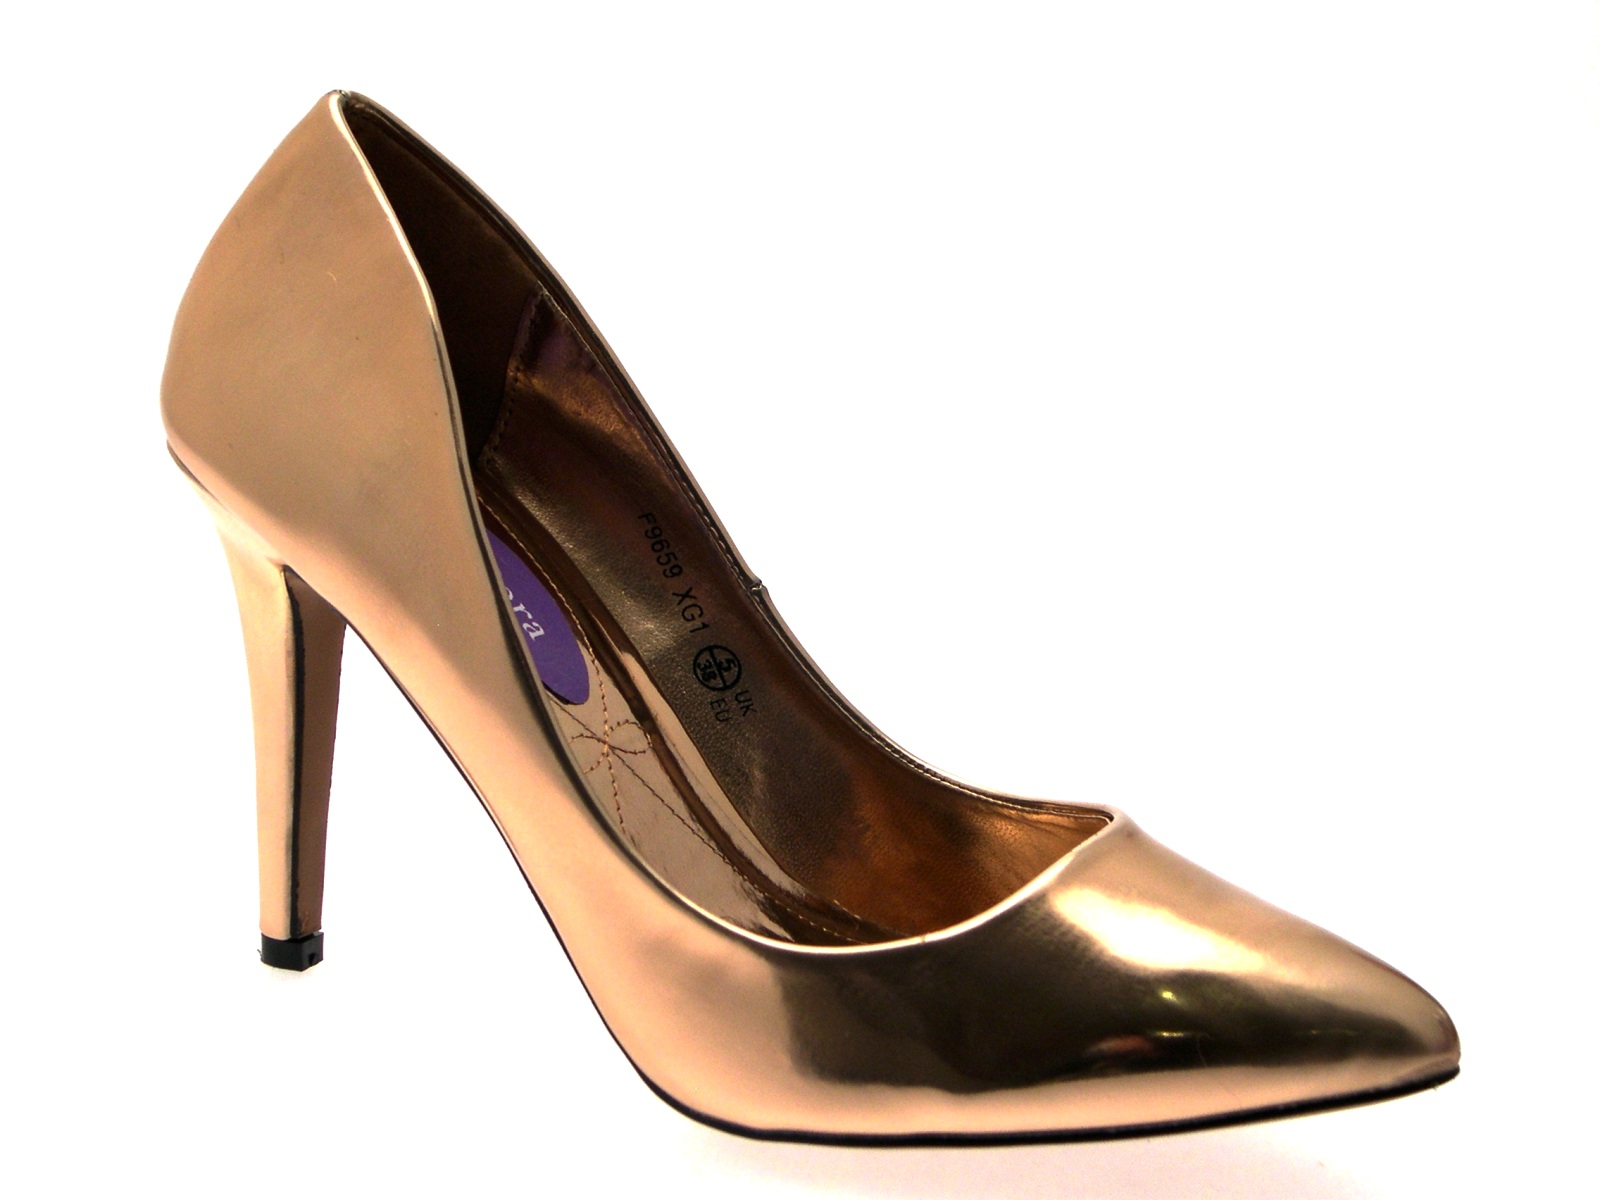 Womens-Metallic-Pointed-Toe-Court-Stiletto-High-Heels-Ladies-Work-Office-Shoes thumbnail 22